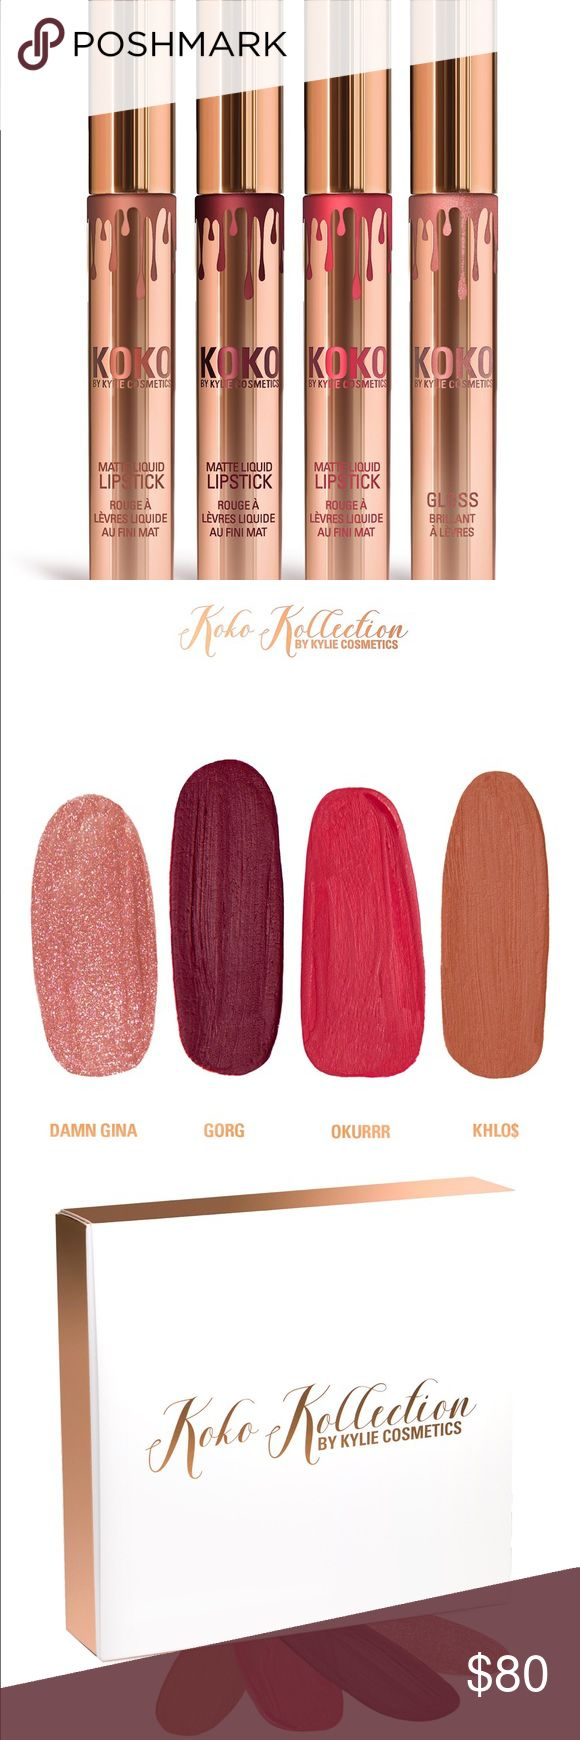 Authentic Koko Kollection NIB NWT Authentic Koko Kollection lipsticks & gloss collection by Kylie Jenner and Khloe Kardashian  Will ship out same day they are received  Open to offers  No trades Please Discount on bundles   Set includes 3 Matte Liquid Lipsticks: Okurrr, Gorg, and Khlo$ 1 Gloss: Damn Gina Kylie Cosmetics Makeup Lipstick